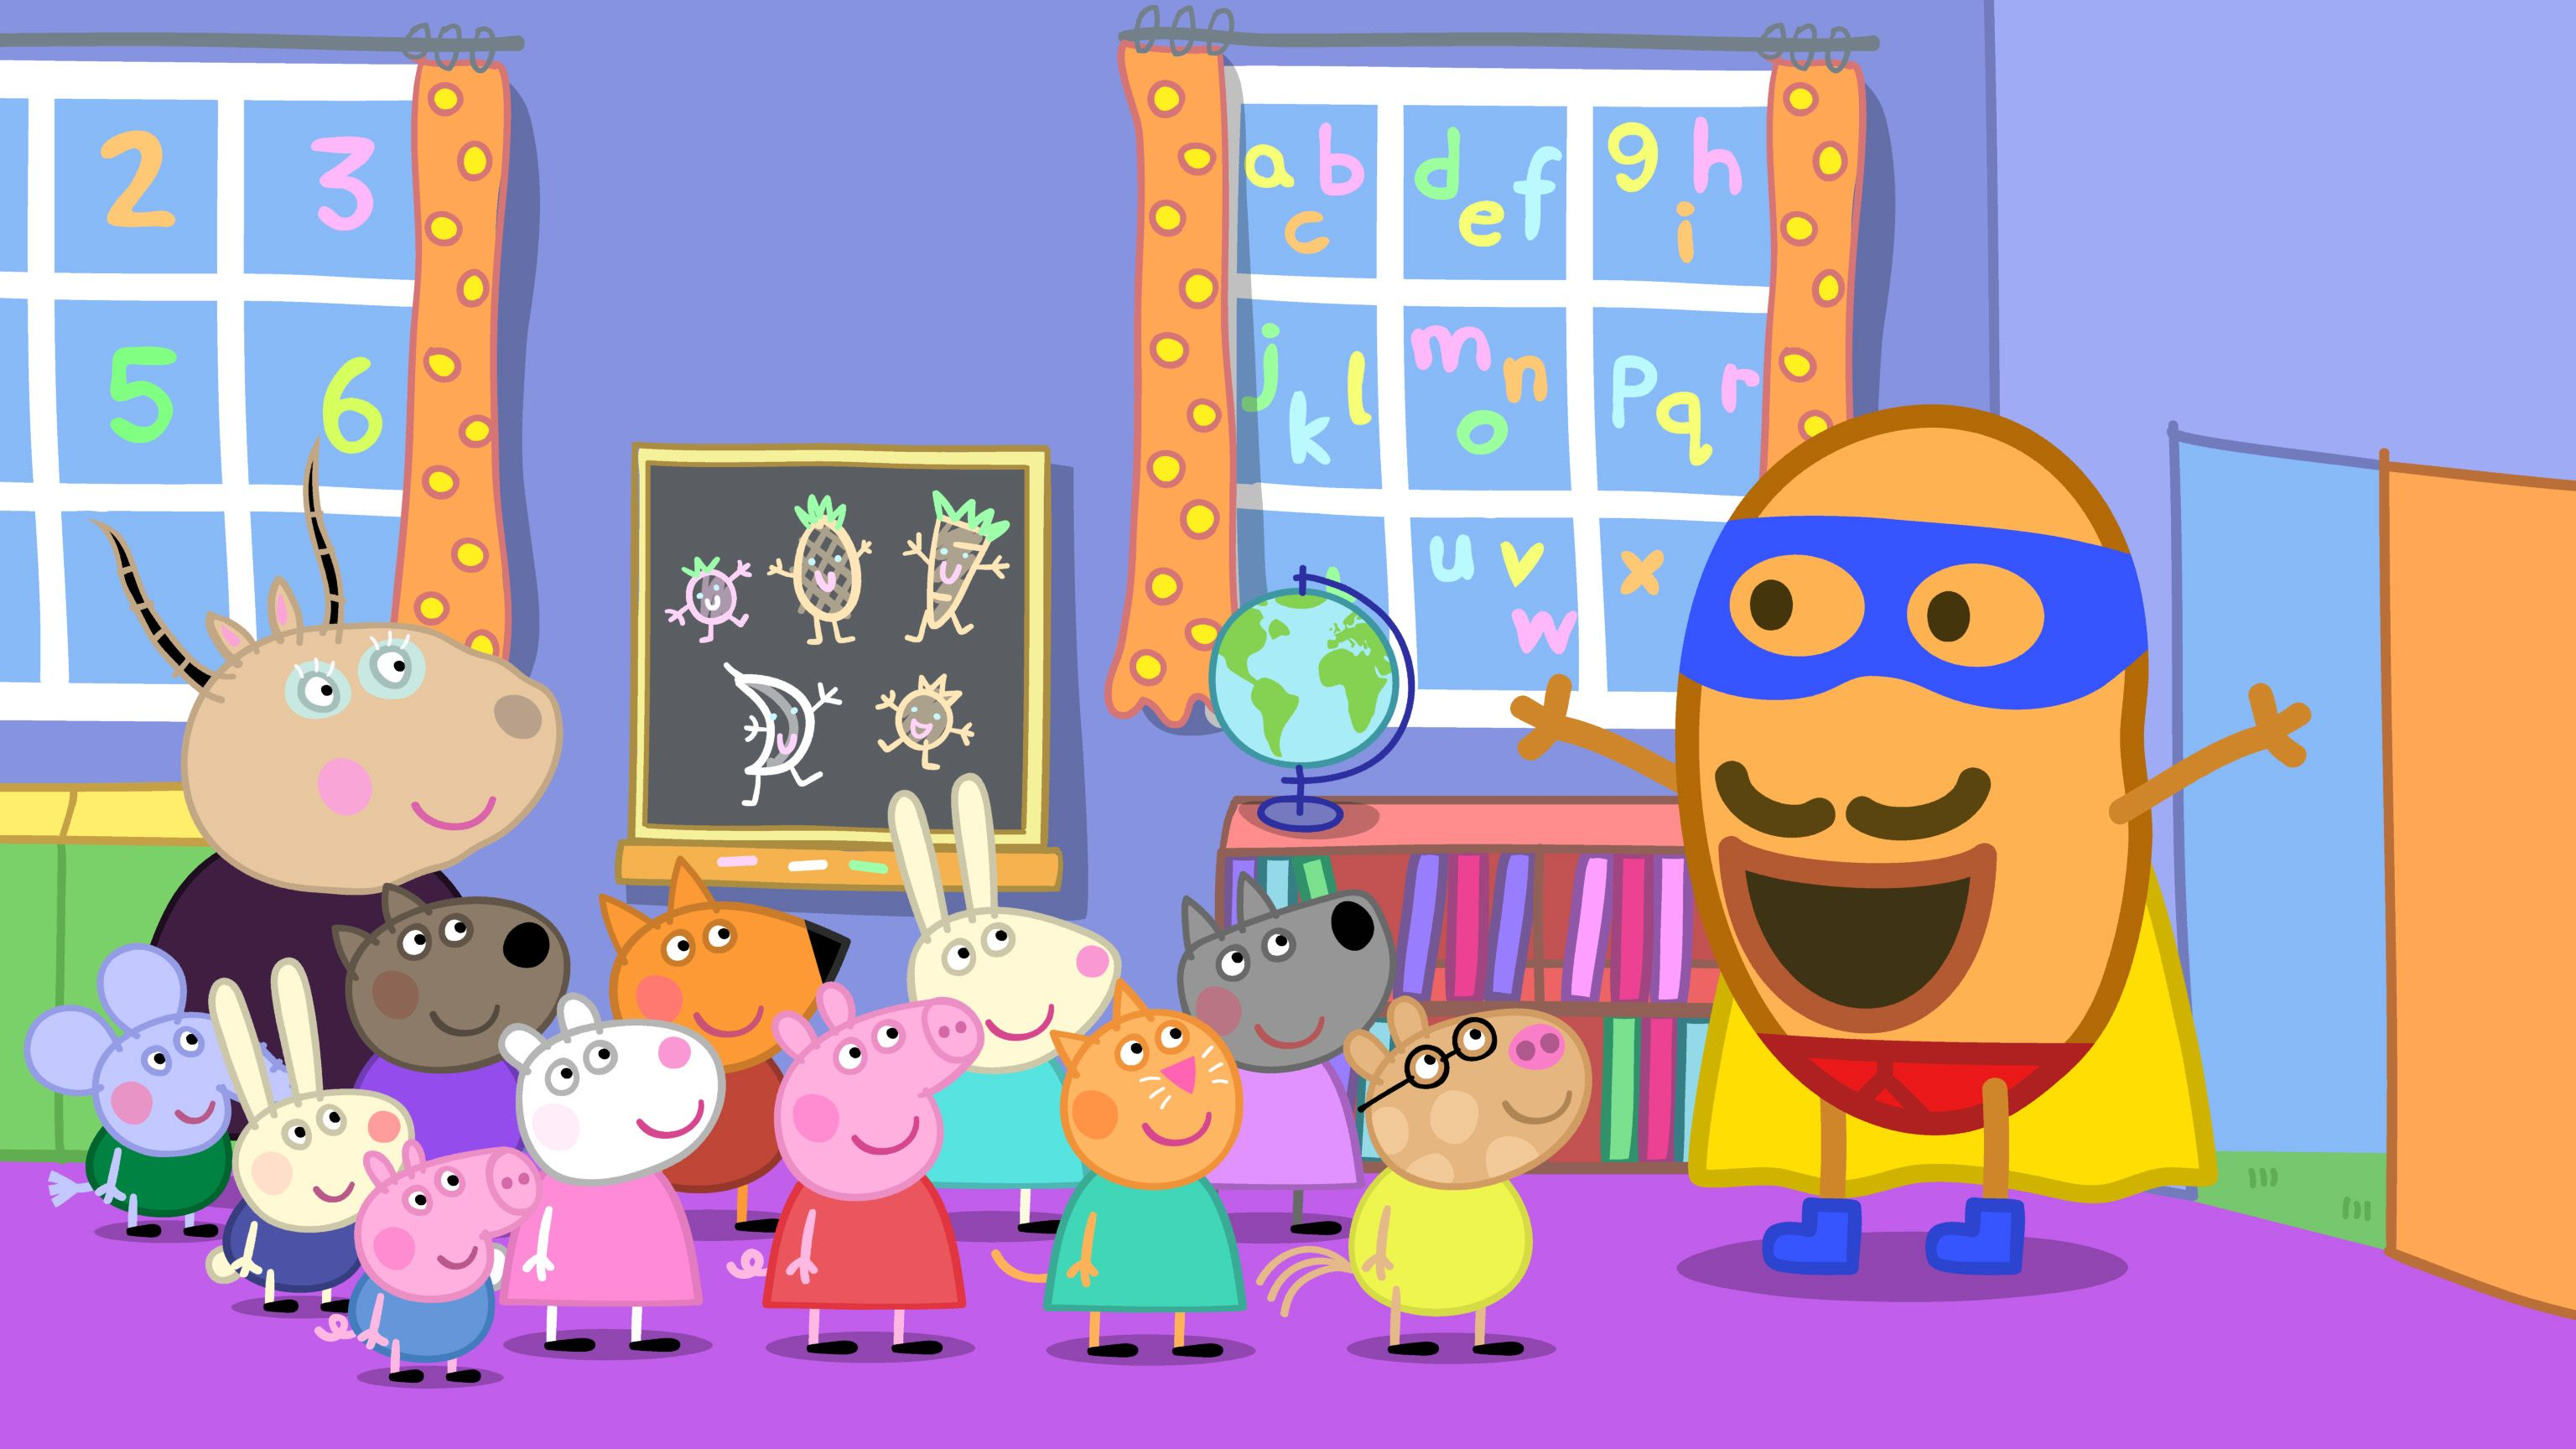 Peppa Pig Meets a Superhero in New Nickelodeon Episodes This